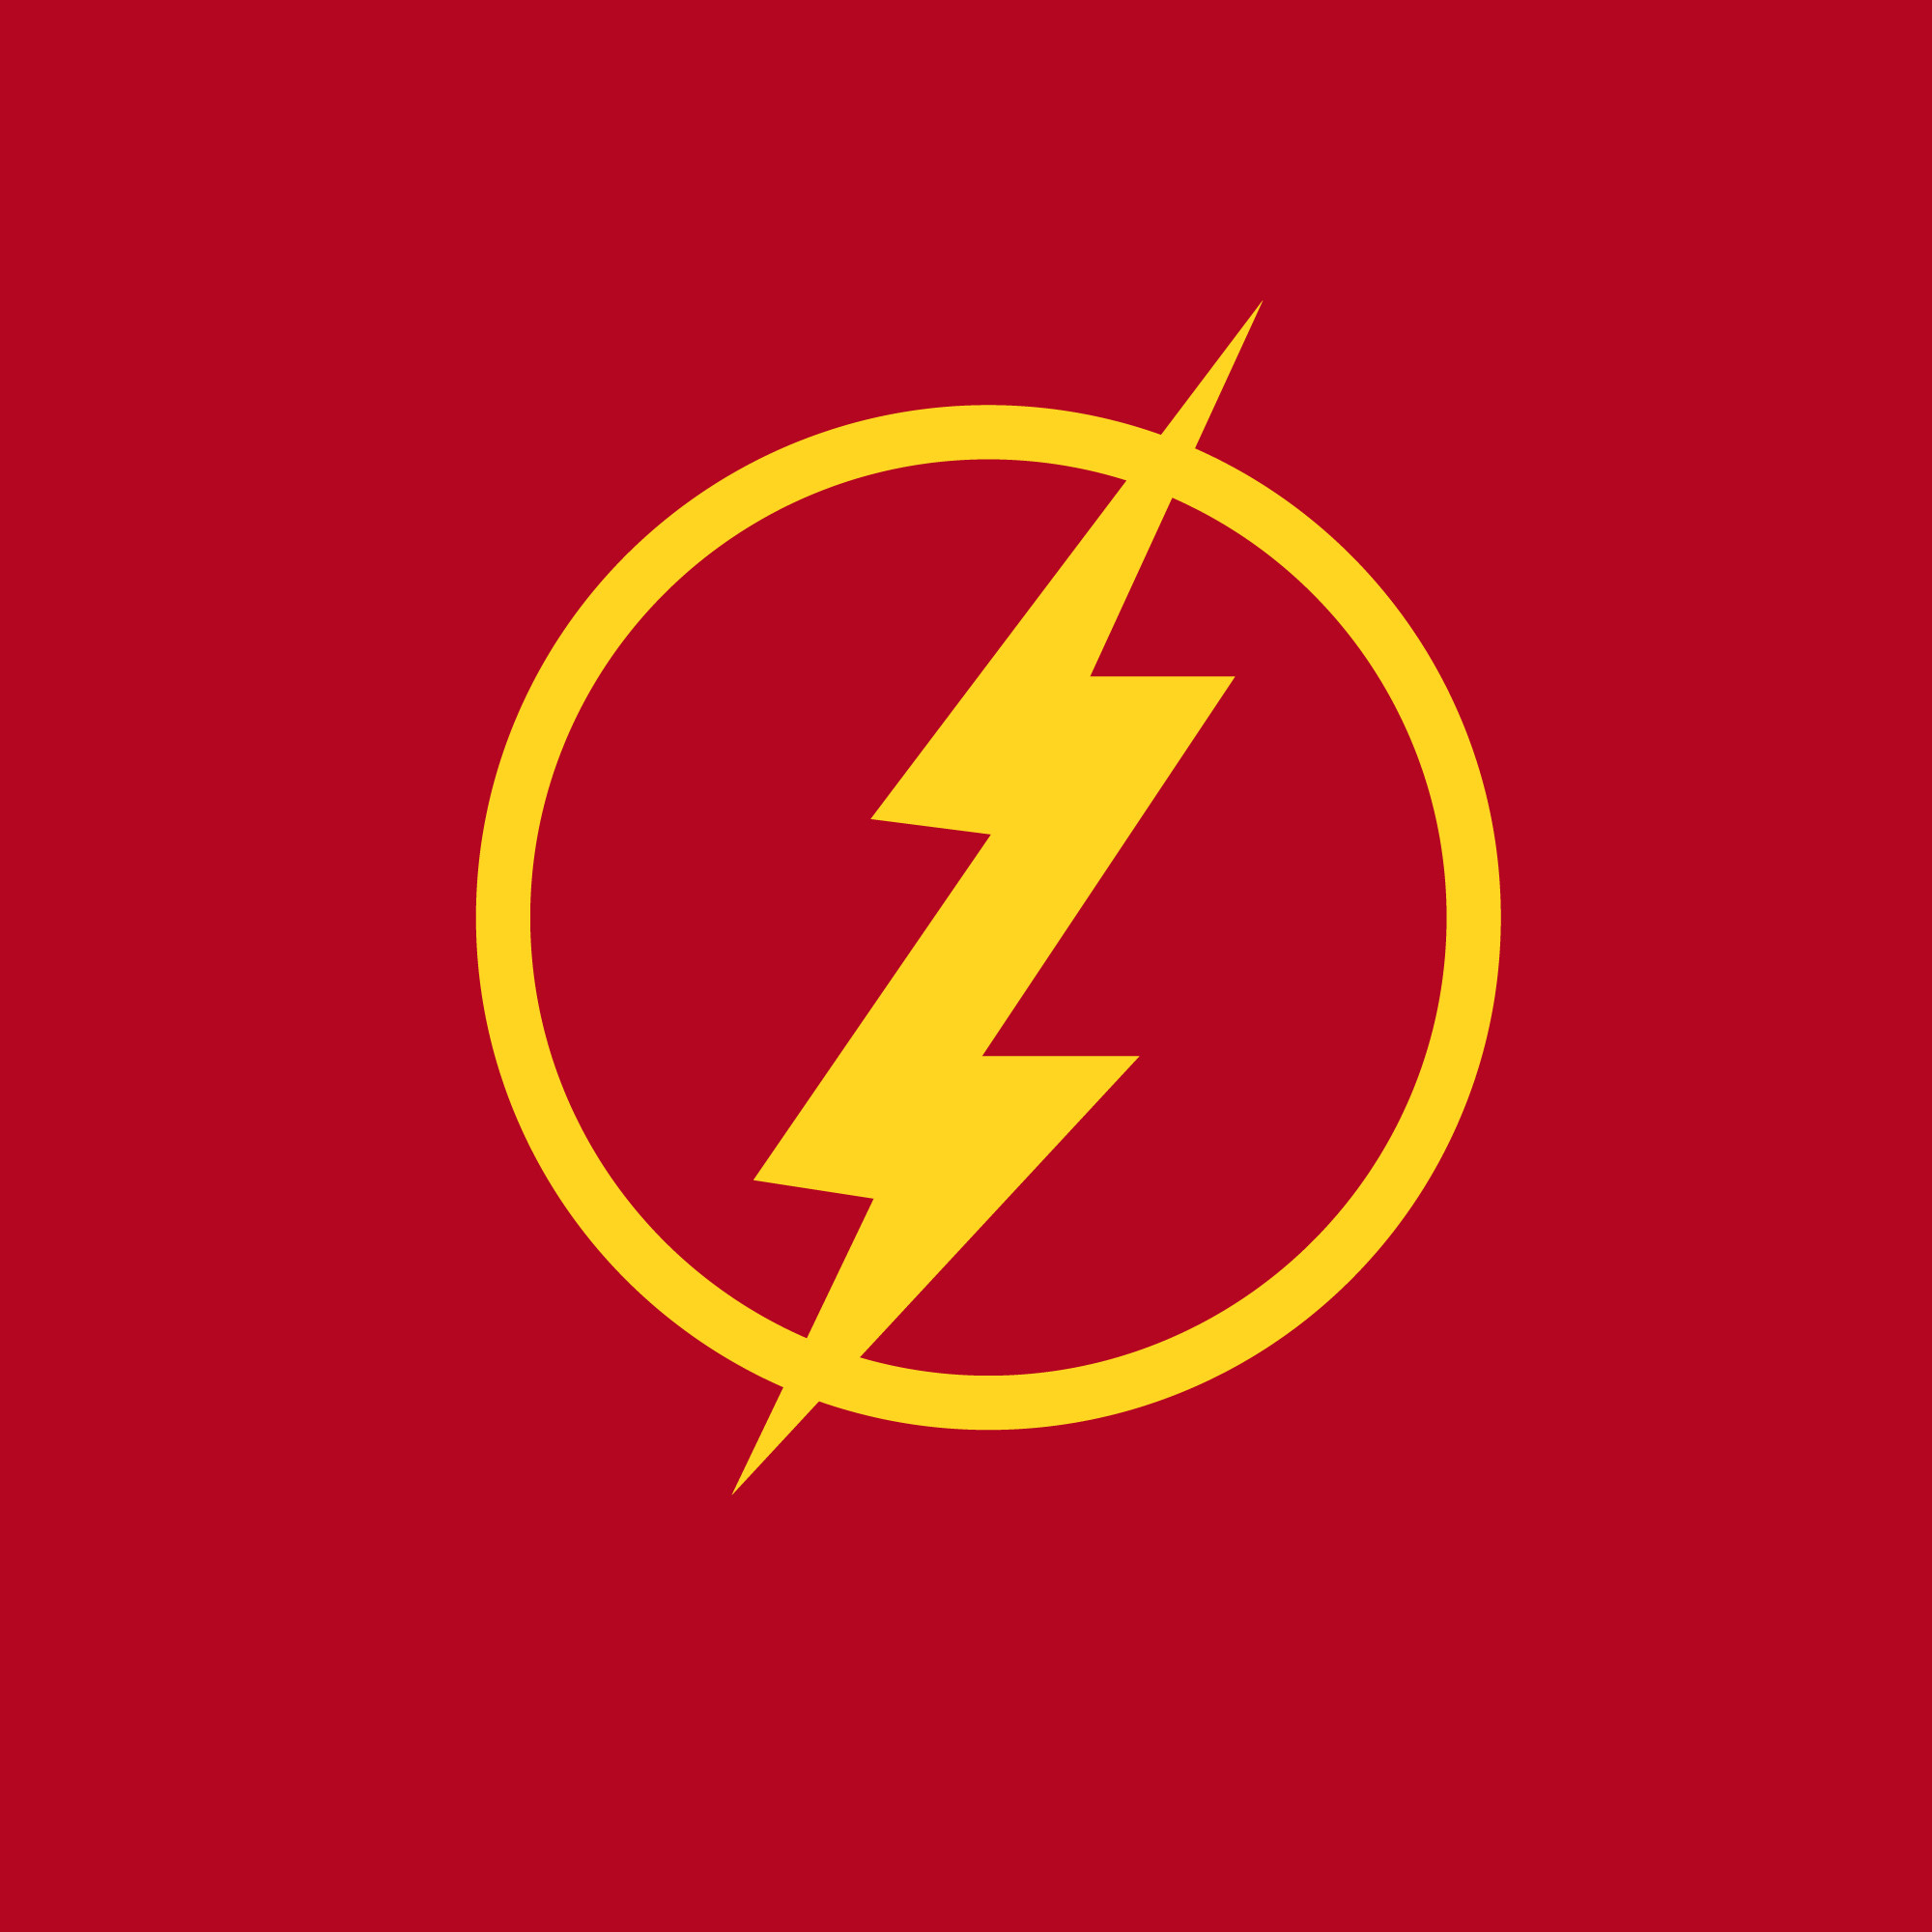 the flash logo wallpaper 77 images